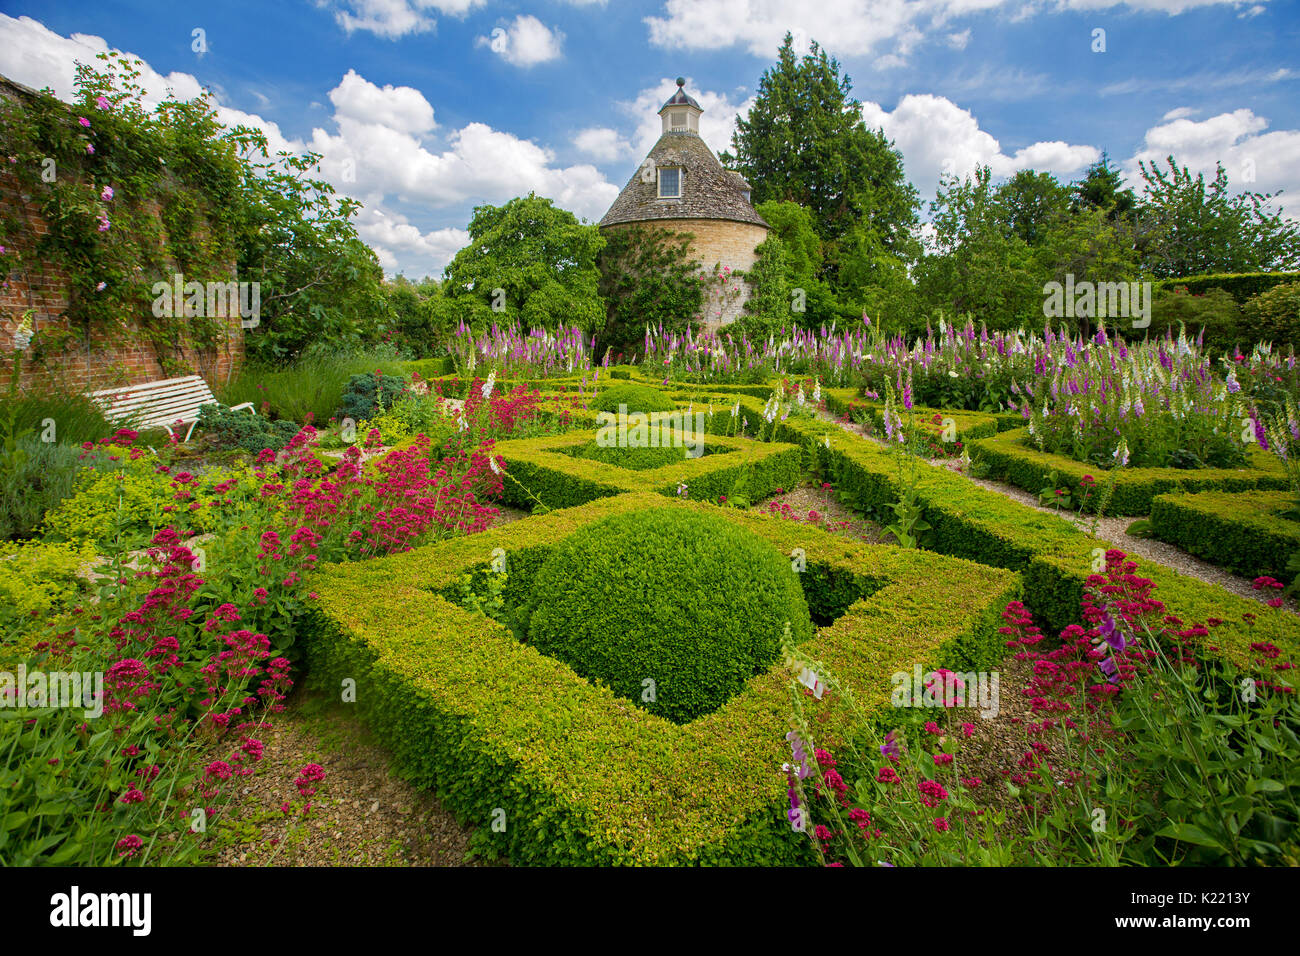 Low yew hedges, knot garden, in geometric design with masses of pink & white foxgloves &  red valerian under blue sky at Rousham gardens, England - Stock Image